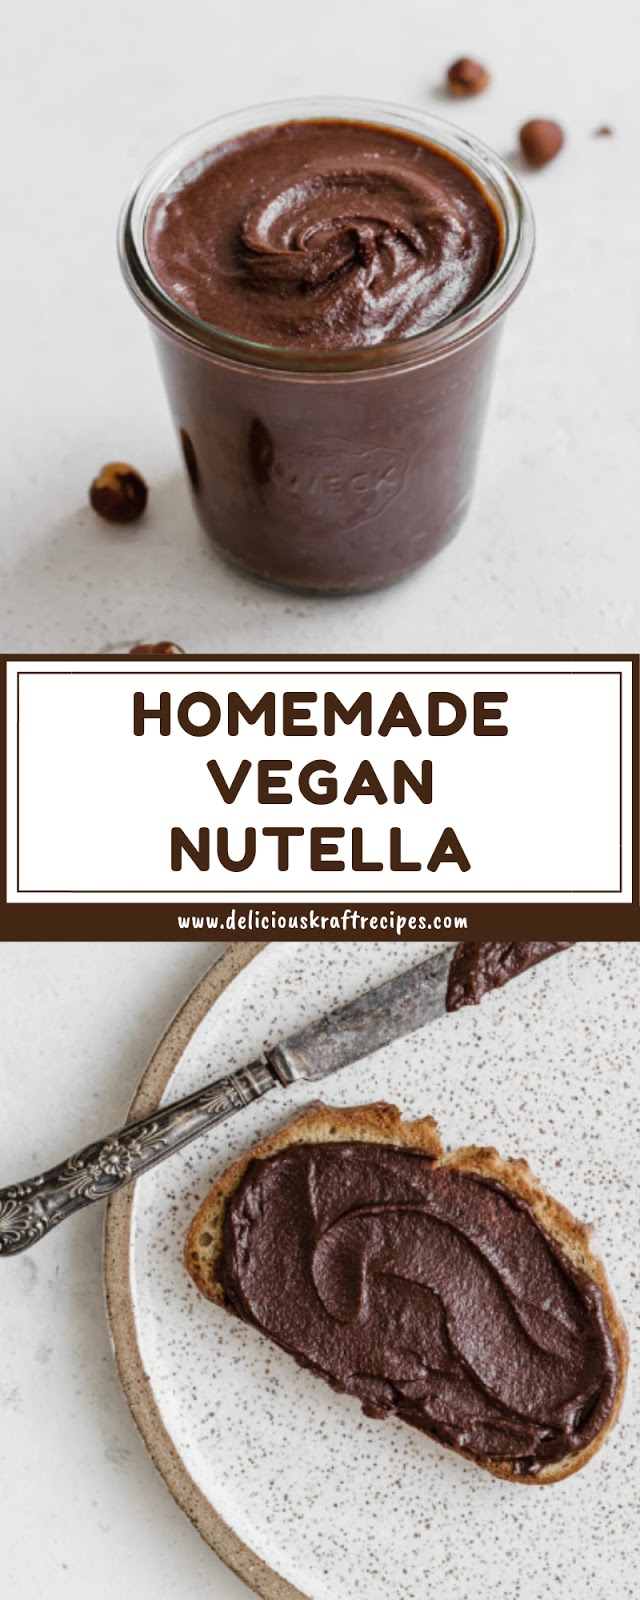 HOMEMADE VEGAN NUTELLA